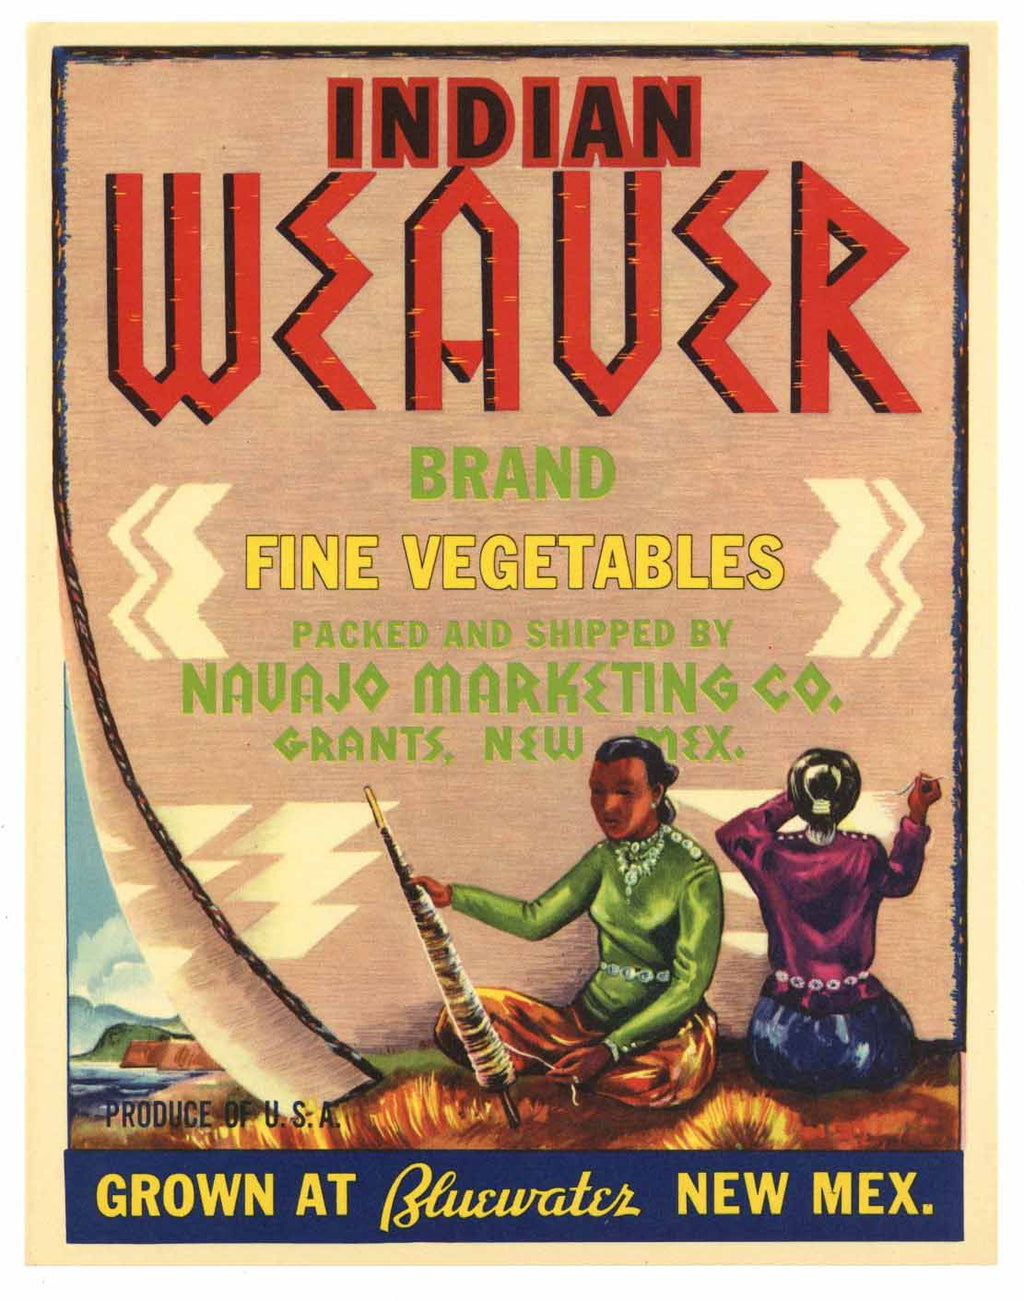 Indian Weaver Brand Vintage Grants New Mexico Vegetable Crate Label